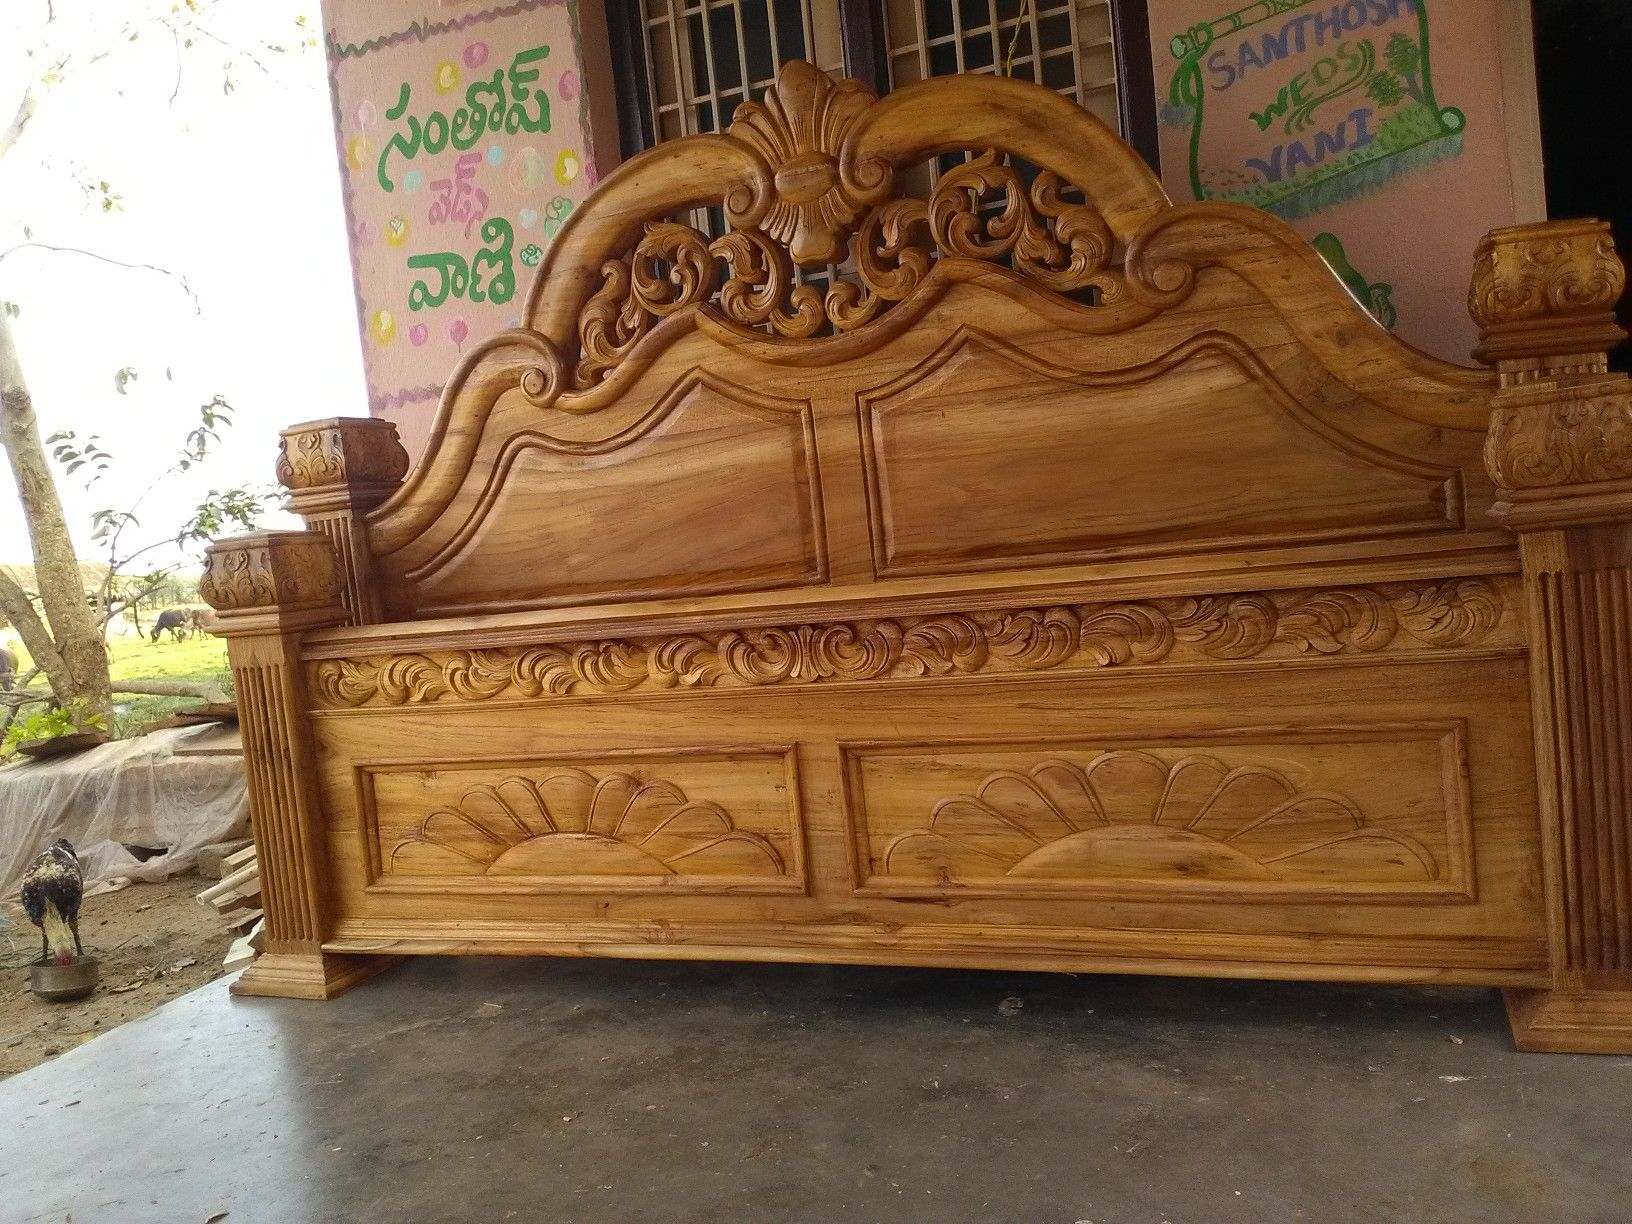 Pin By Taha Maqsood On Ballanki Santhoshkumar Wood Bed Design Wood Carving Furniture Wooden Bed Design